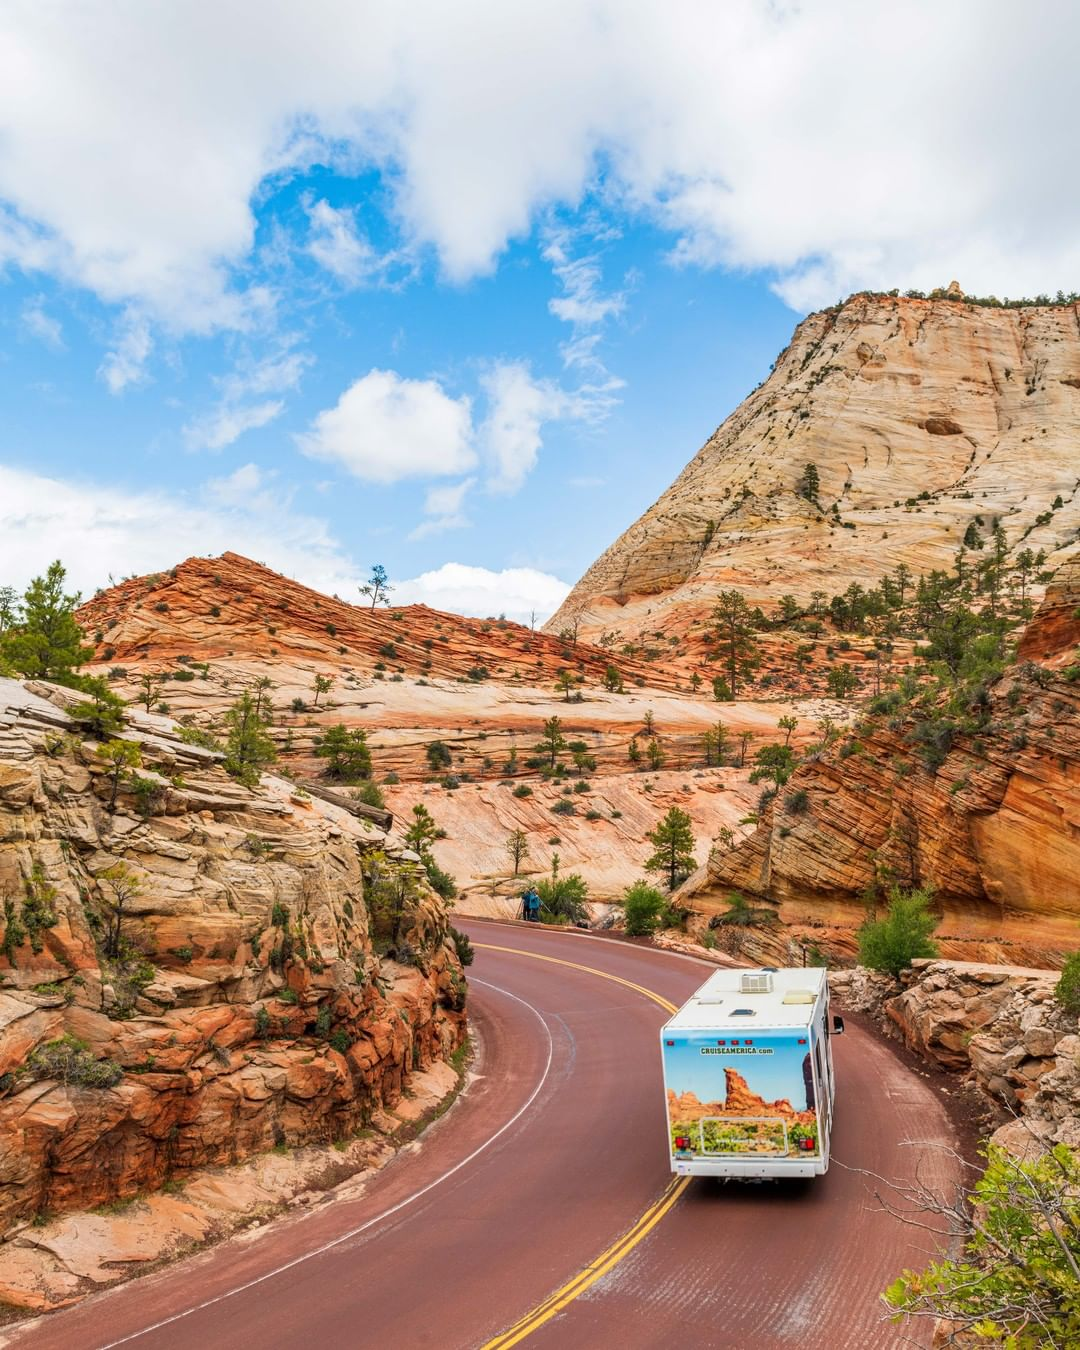 Cruise-America-Best-Time-to-Visit-Zion-National-Park-jordanbanksphoto.jpg